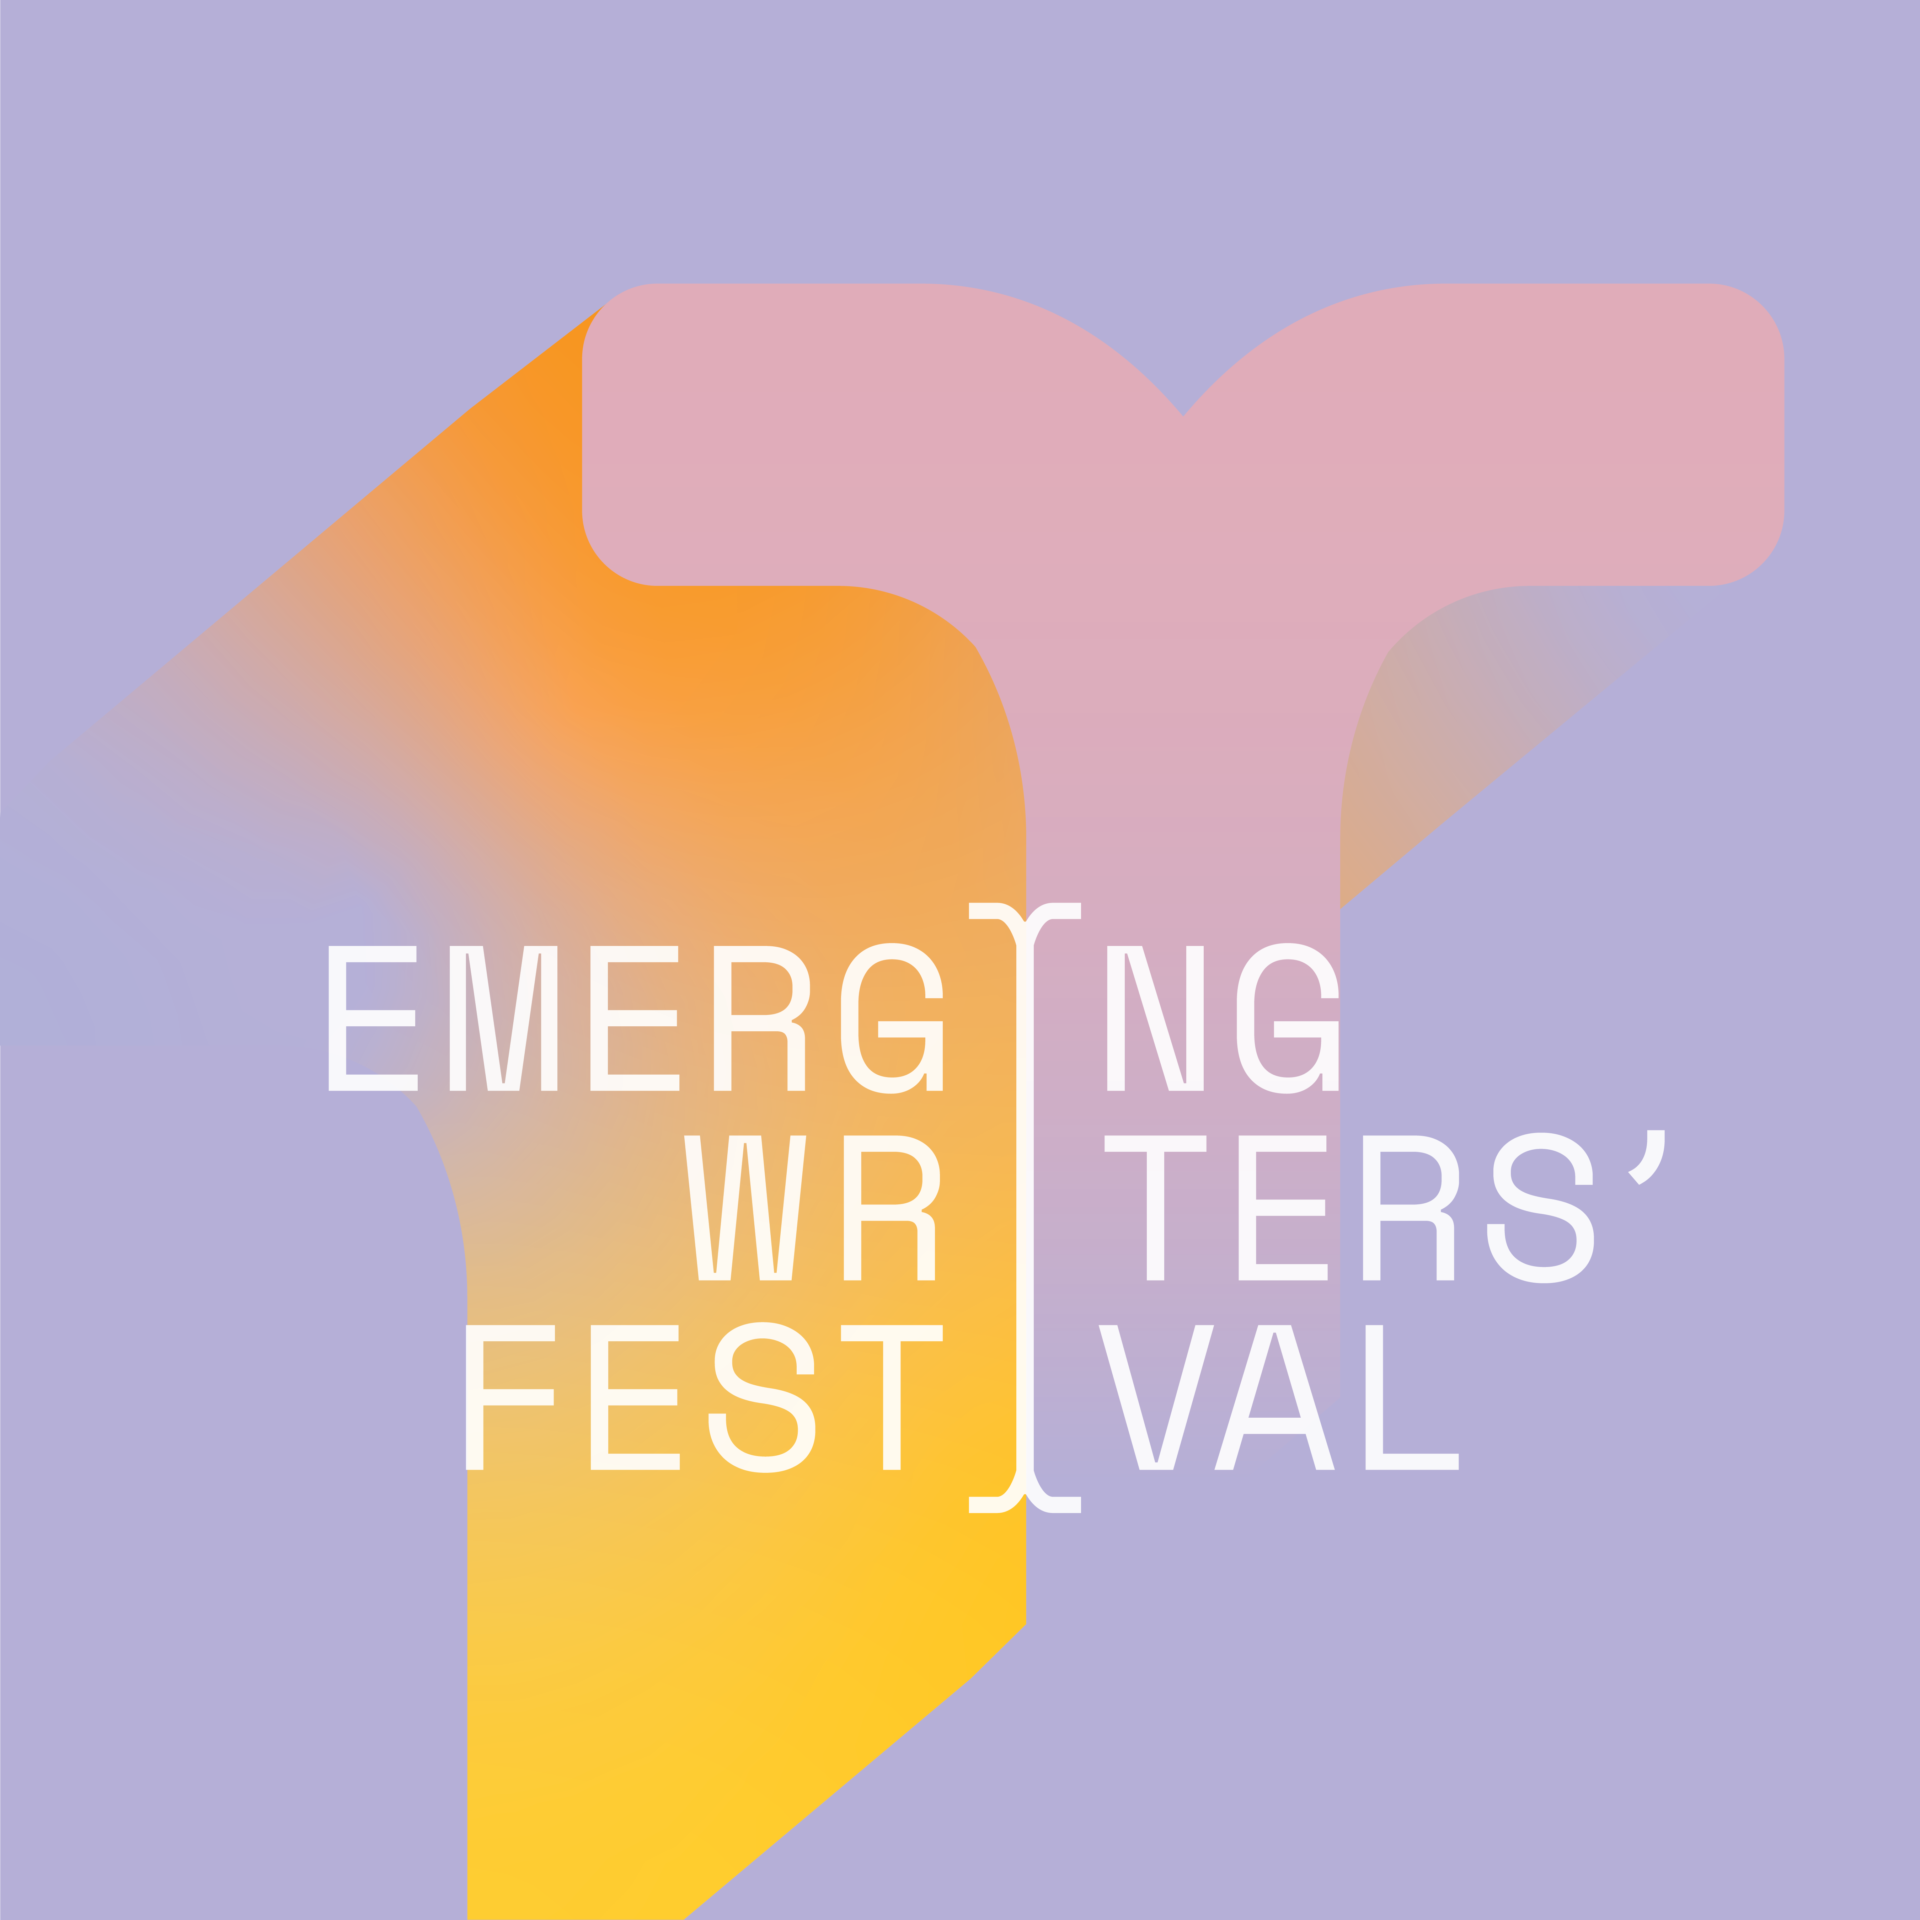 The Emerging Writers' Festival logo is overlaid over a dreamy stylised purple, pink, yellow and orange background